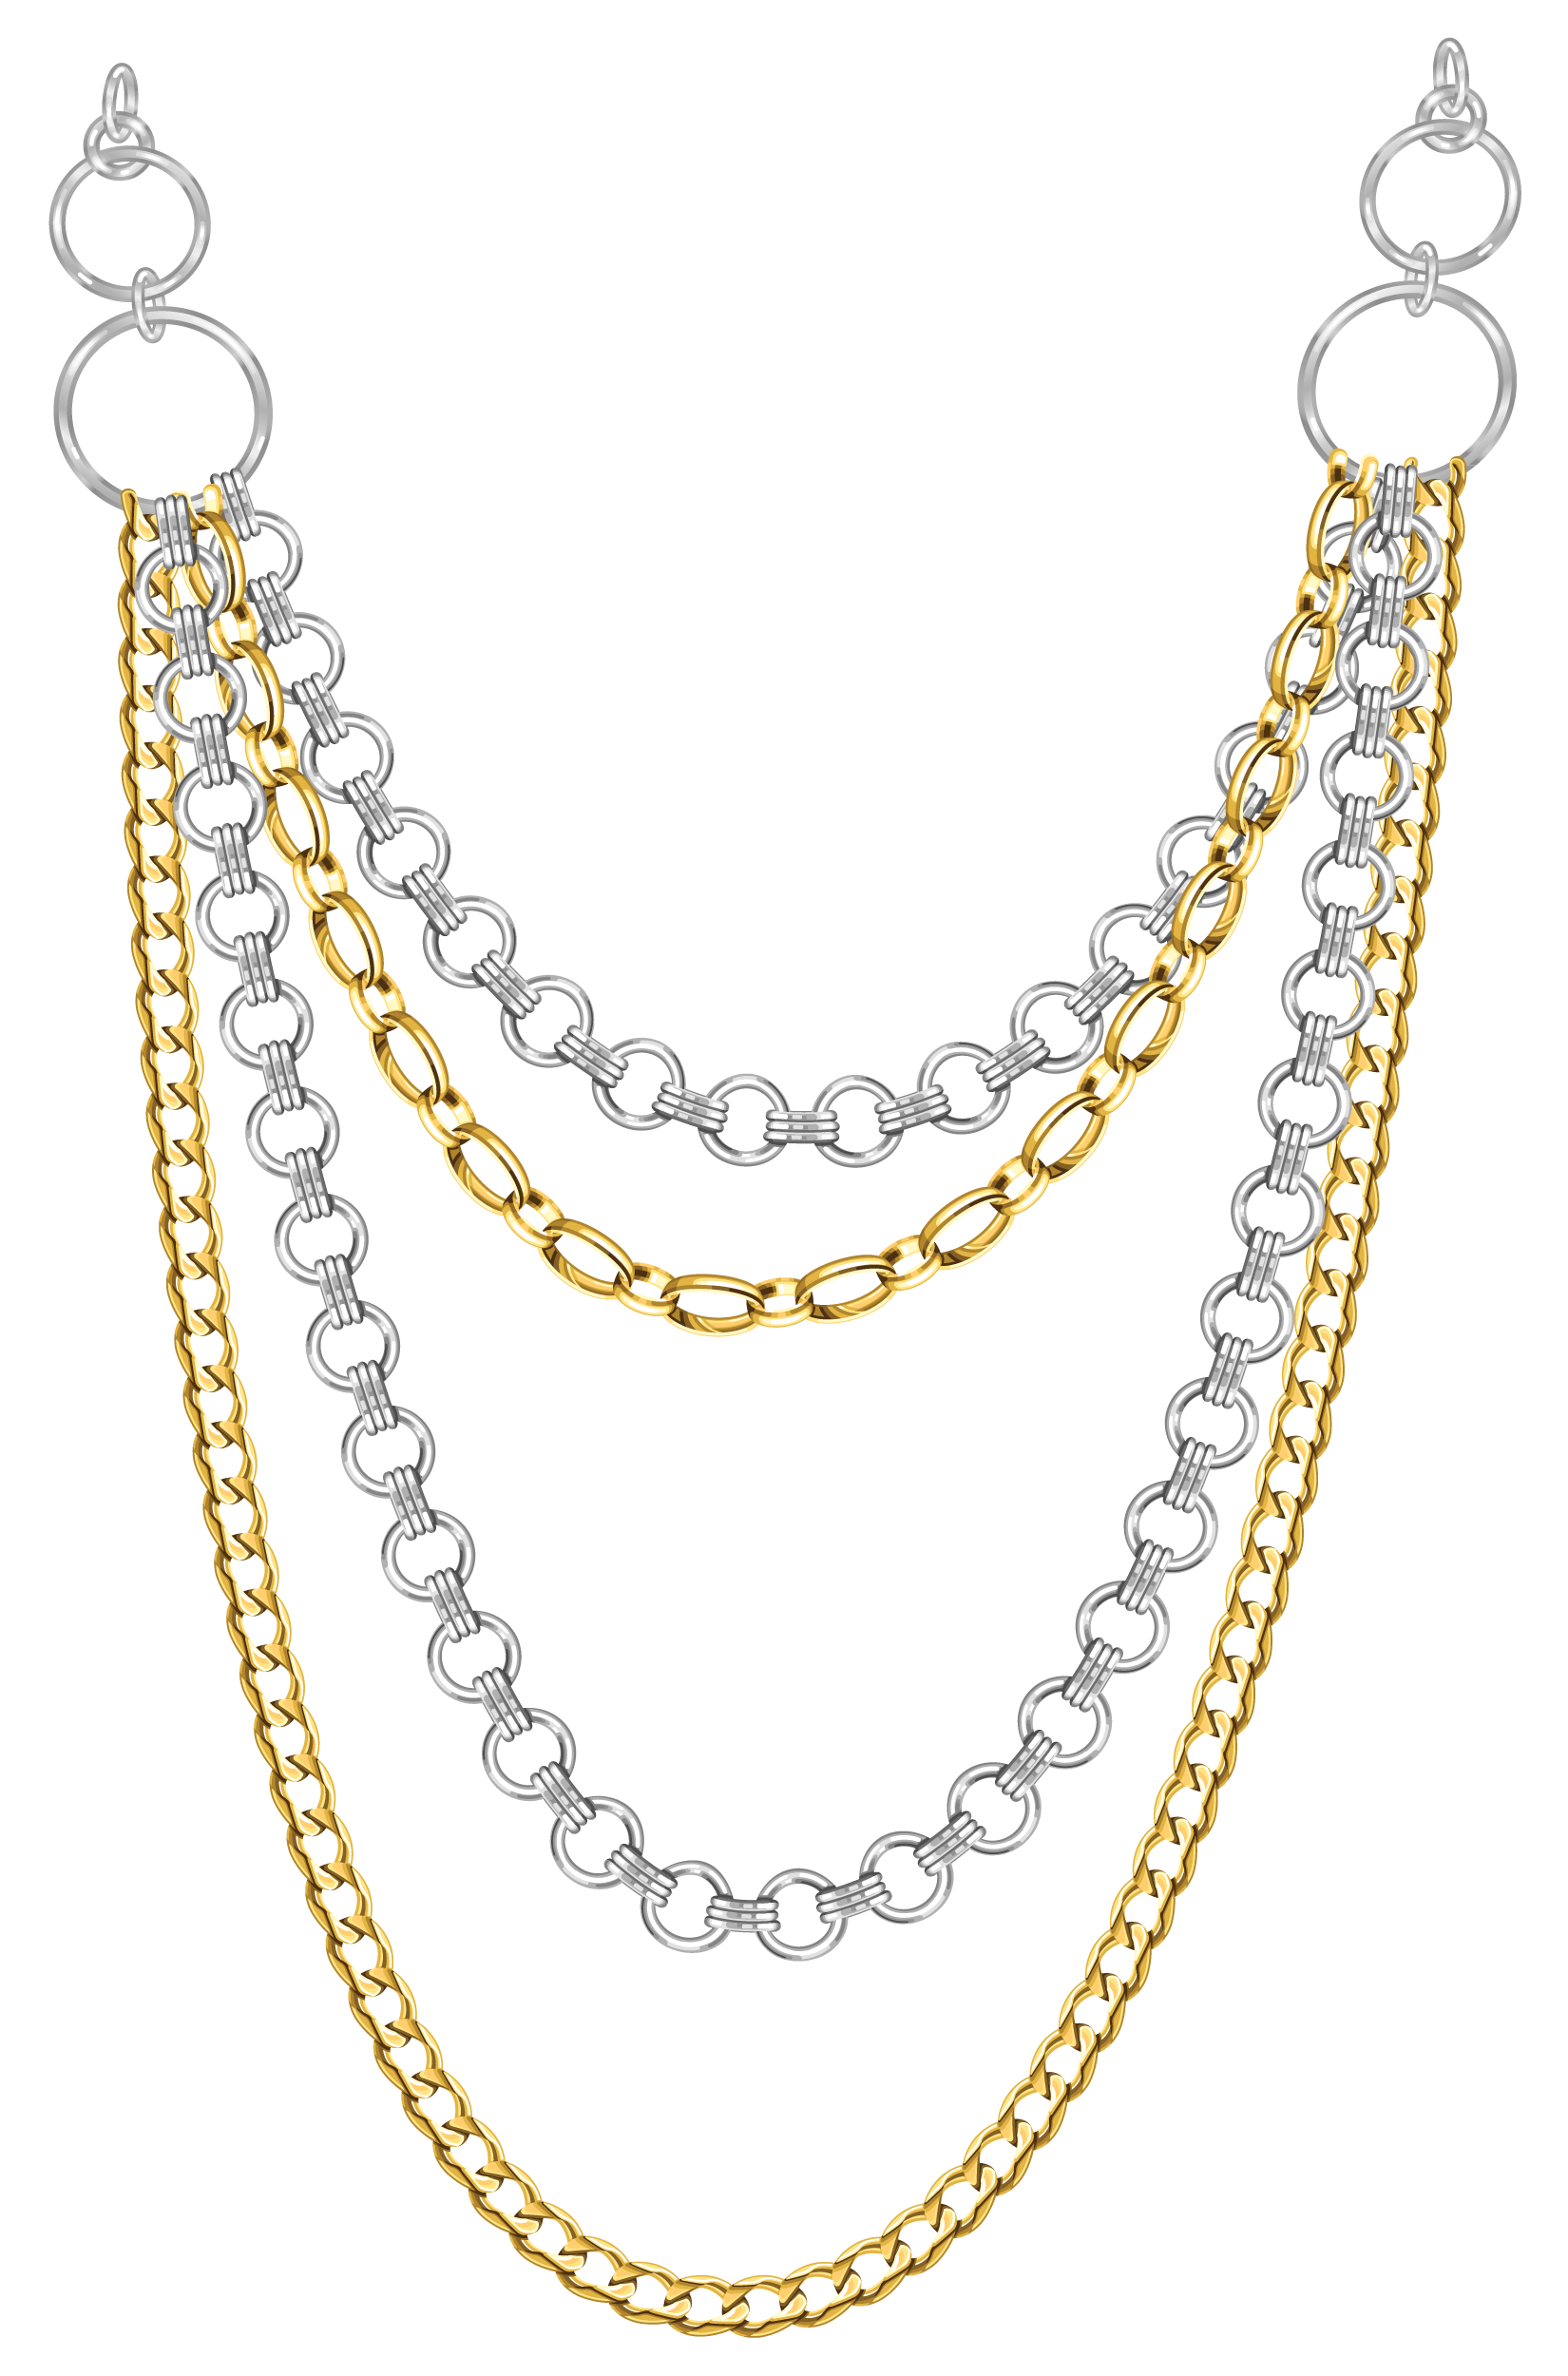 1650x2500 19 Necklace Vector Huge Freebie! Download For Powerpoint